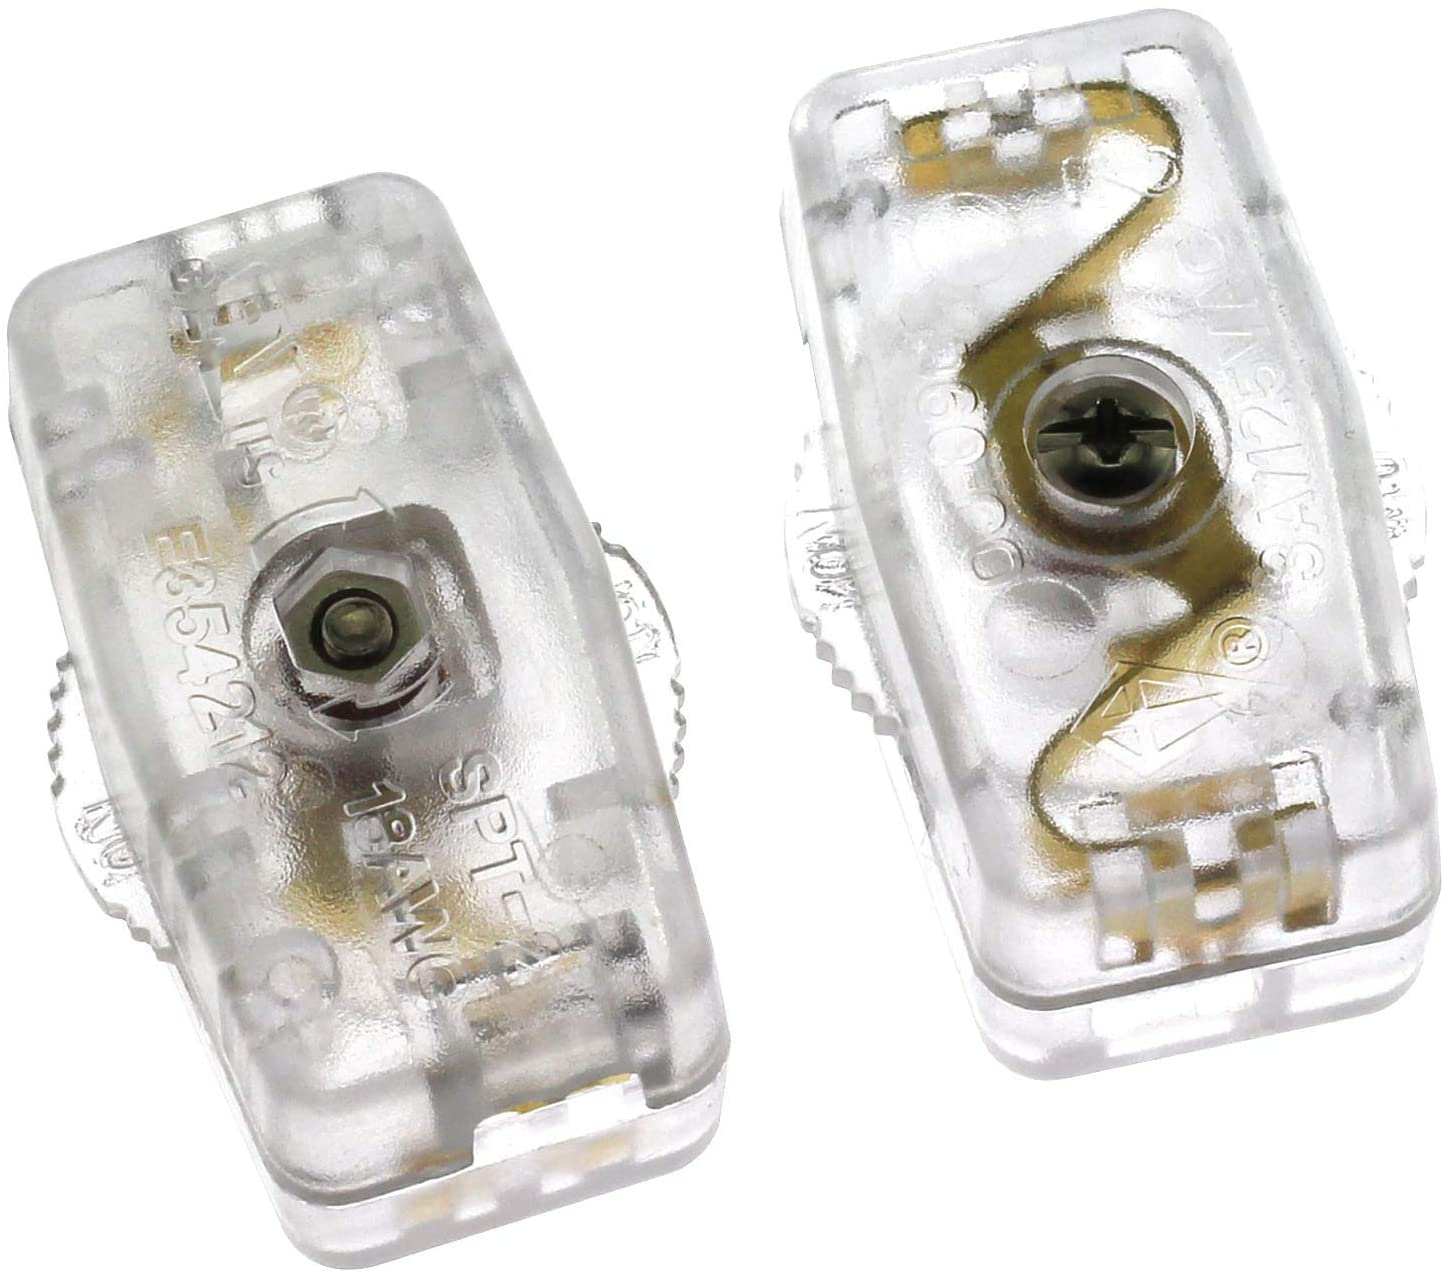 RuiLing 2-Pack AC 3A 125V Inline Switch Thumbwheel Light Lamp Plastic Clear Housing On/Off